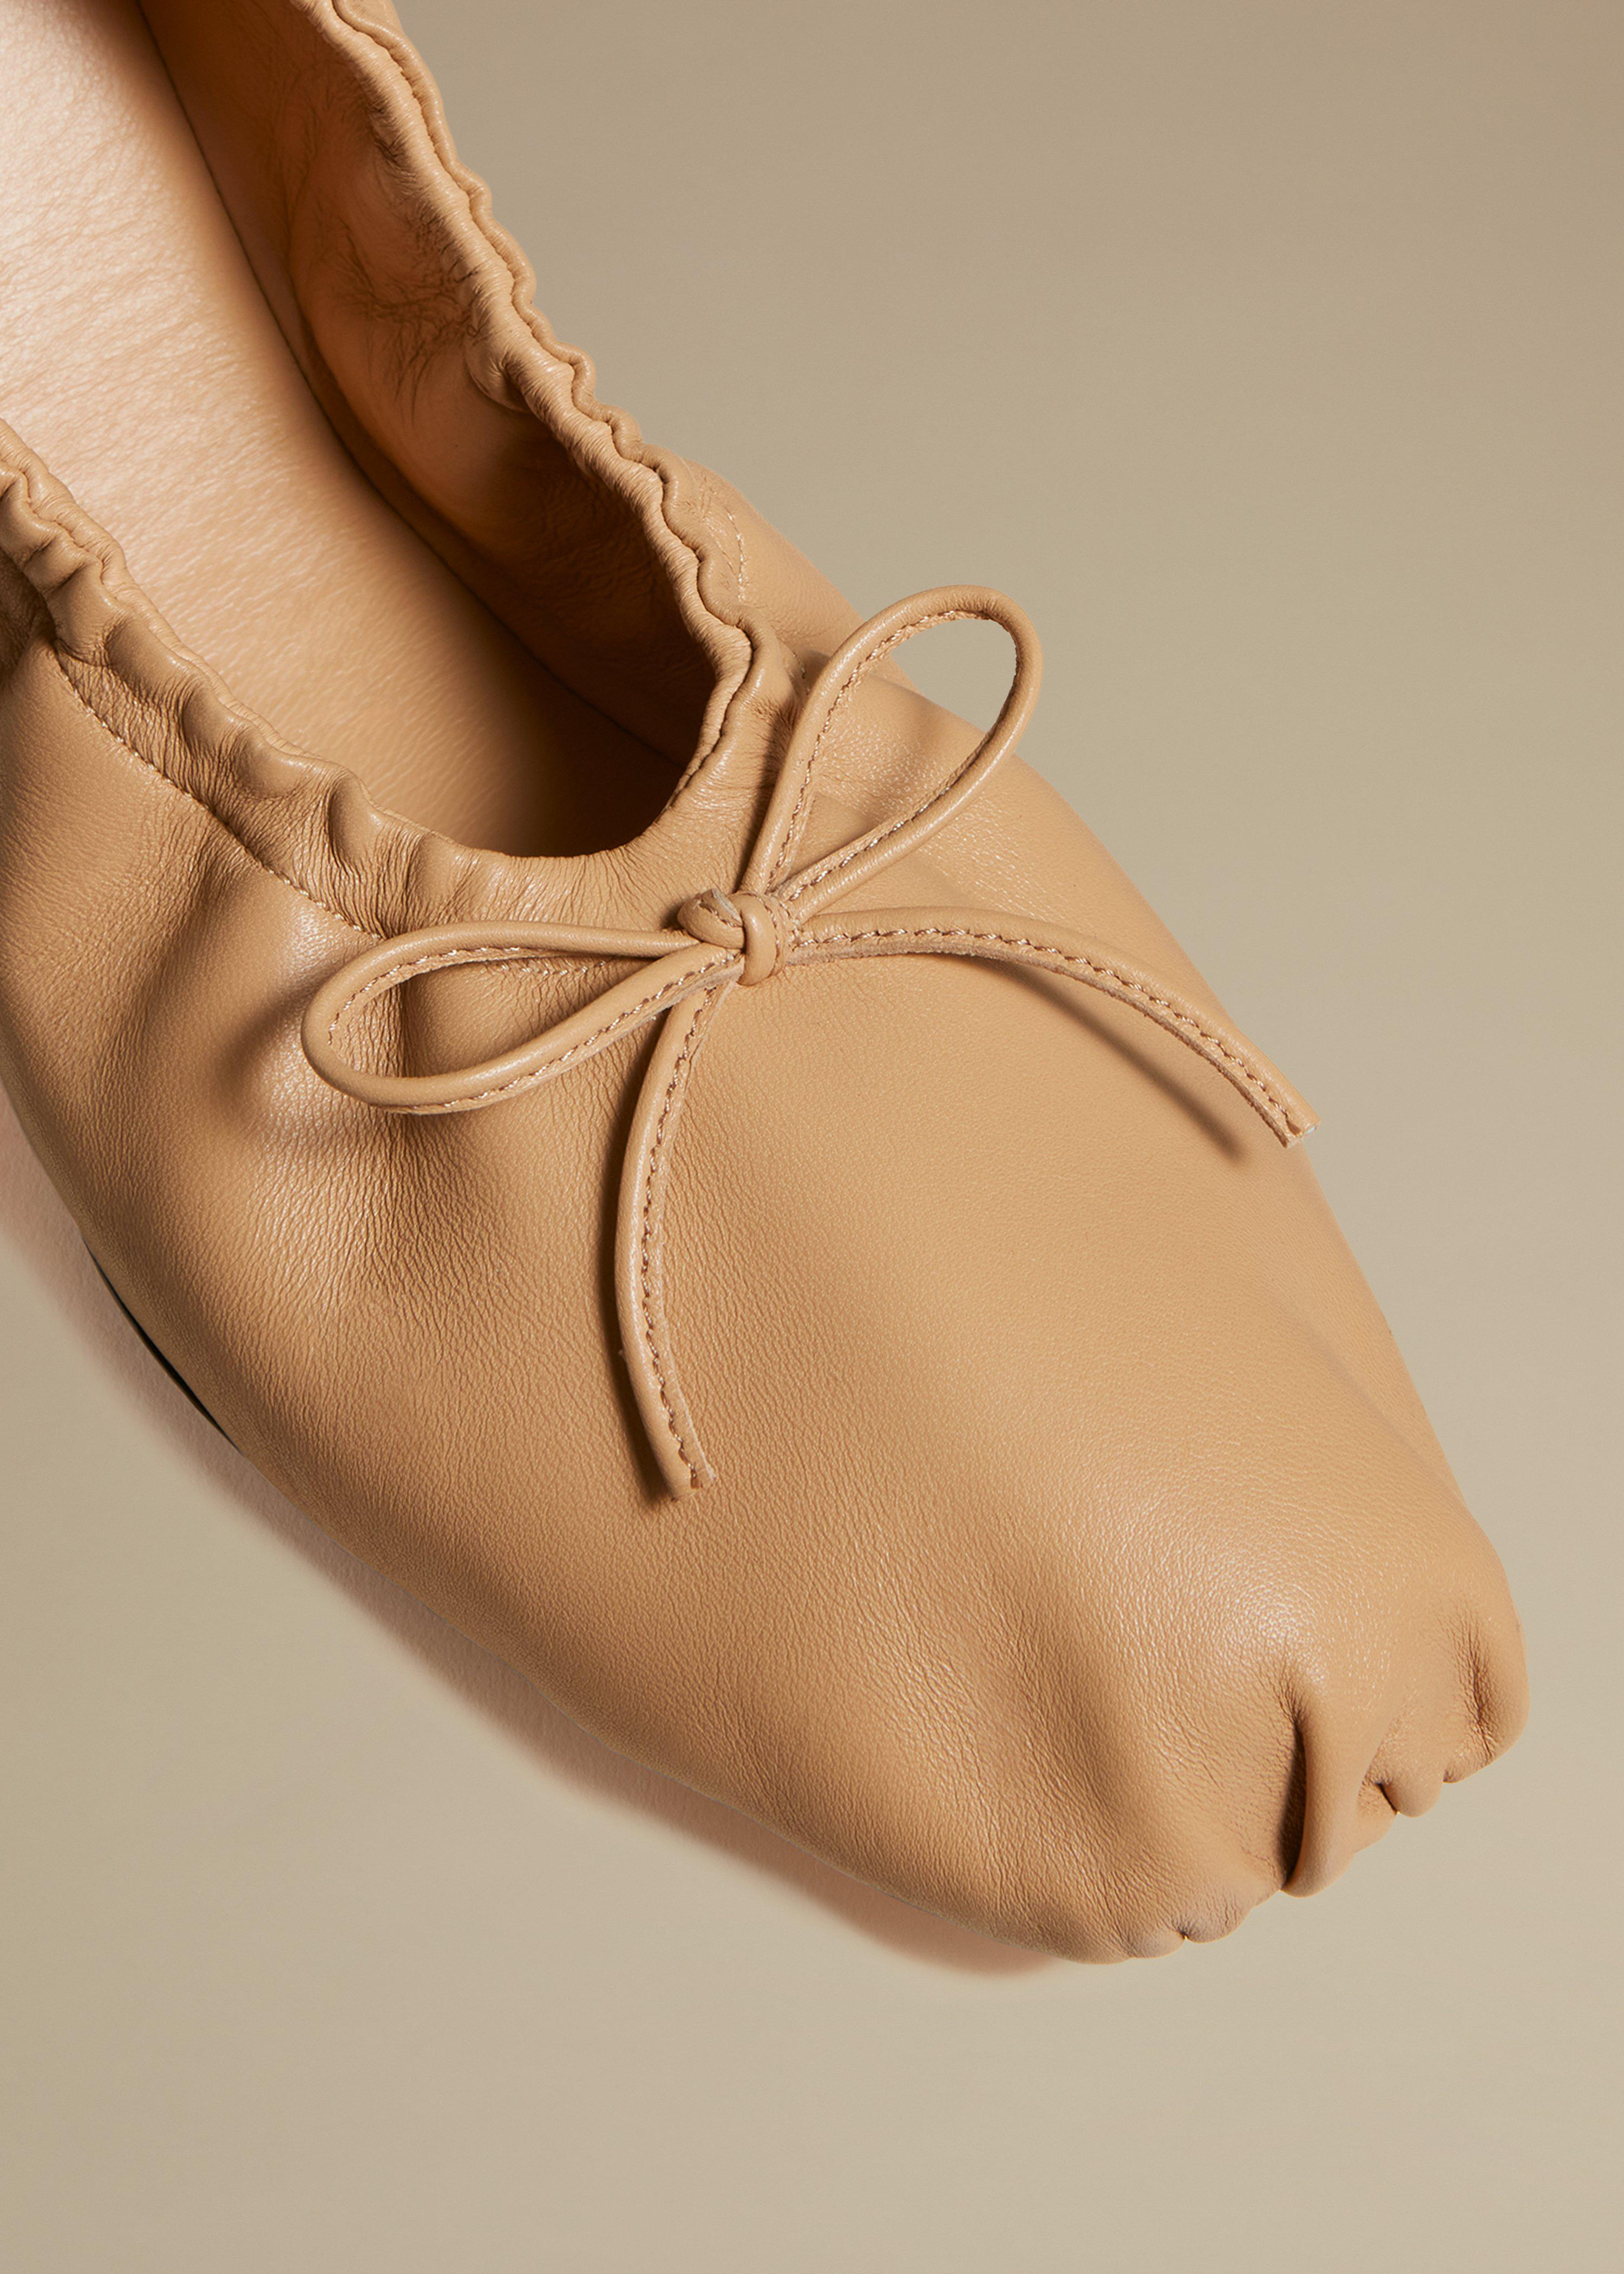 The Ashland Ballet Flat in Tan Leather 2